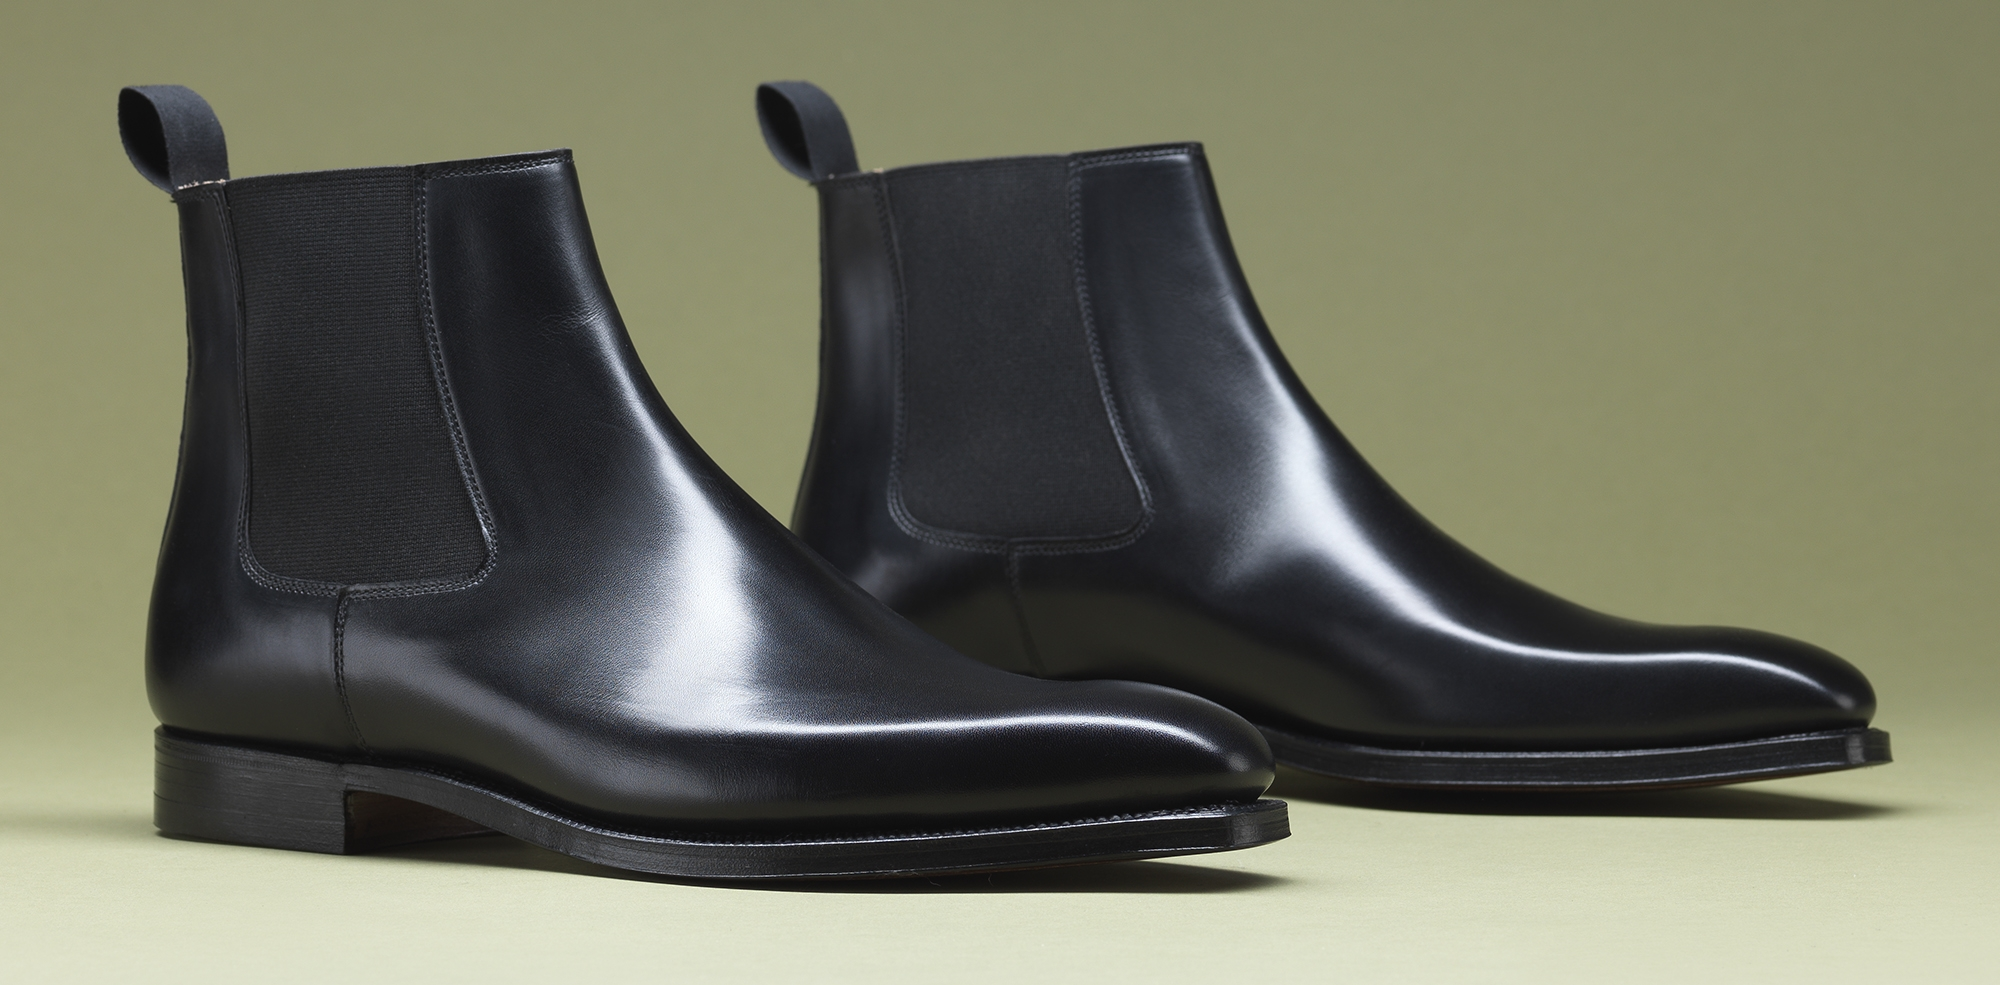 9e10defcee7 Crockett & Jones A/W Collection Now Shown – Coming Soon – The Shoe ...